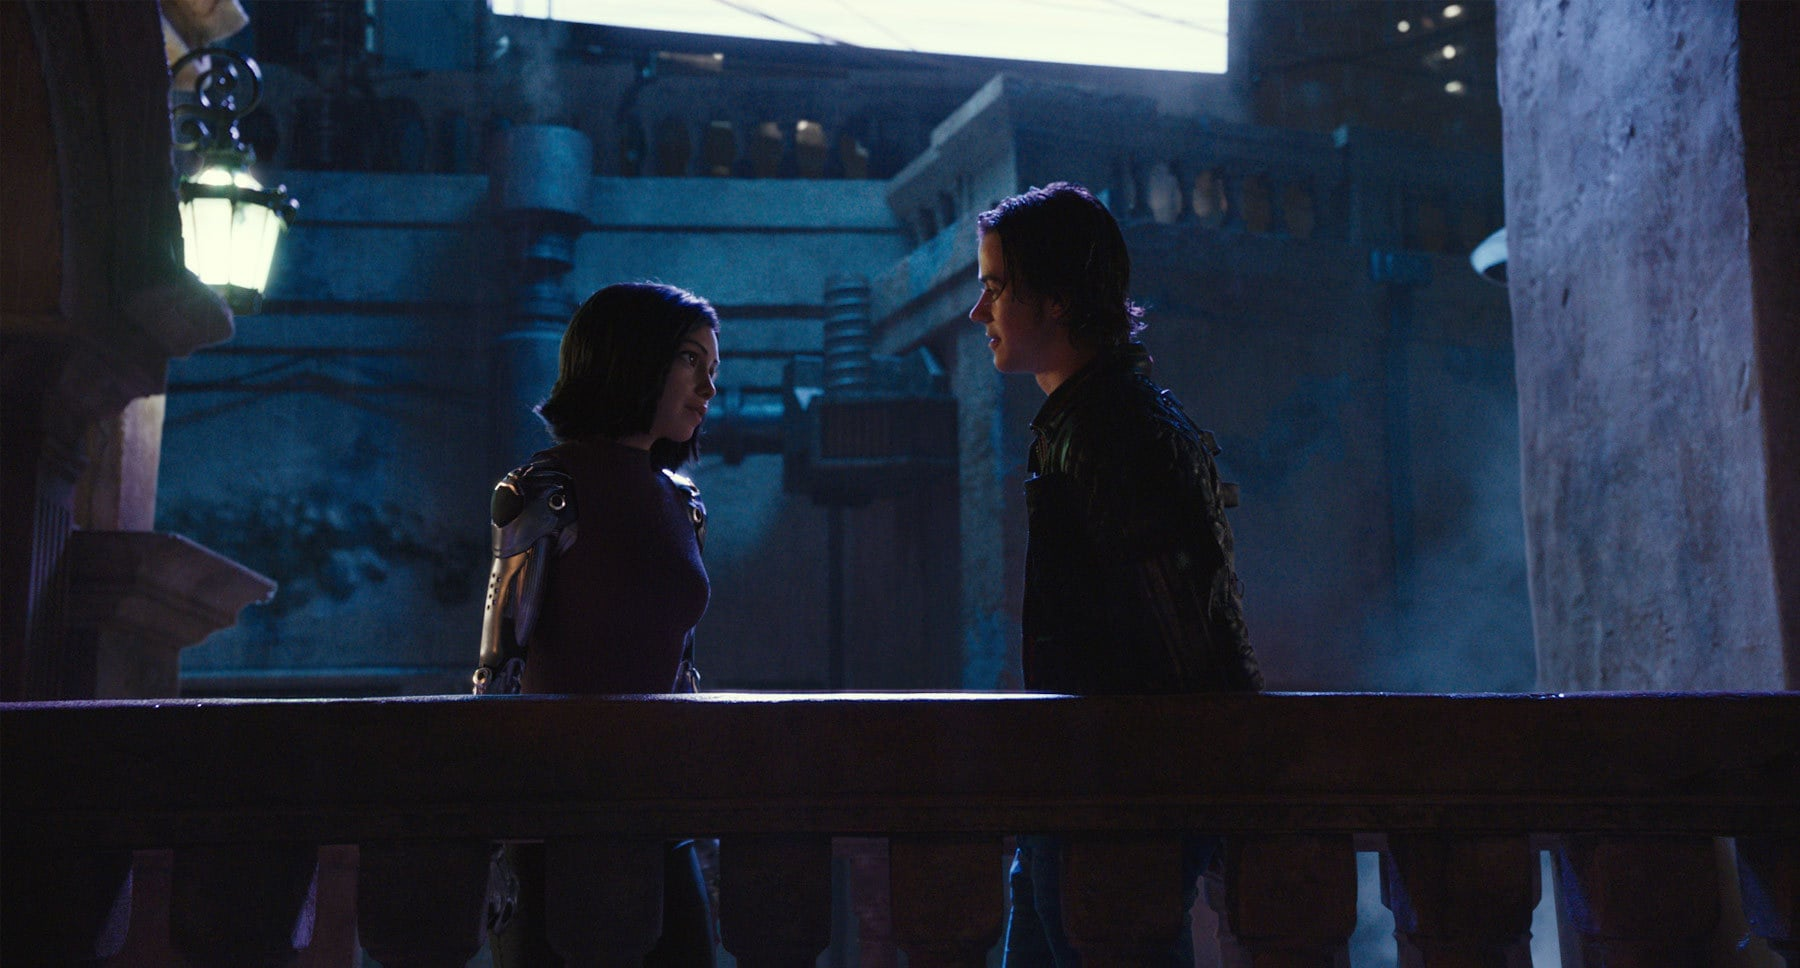 Actors Rosa Salazar and Keean Johnson in the movie Alita: Battle Angel